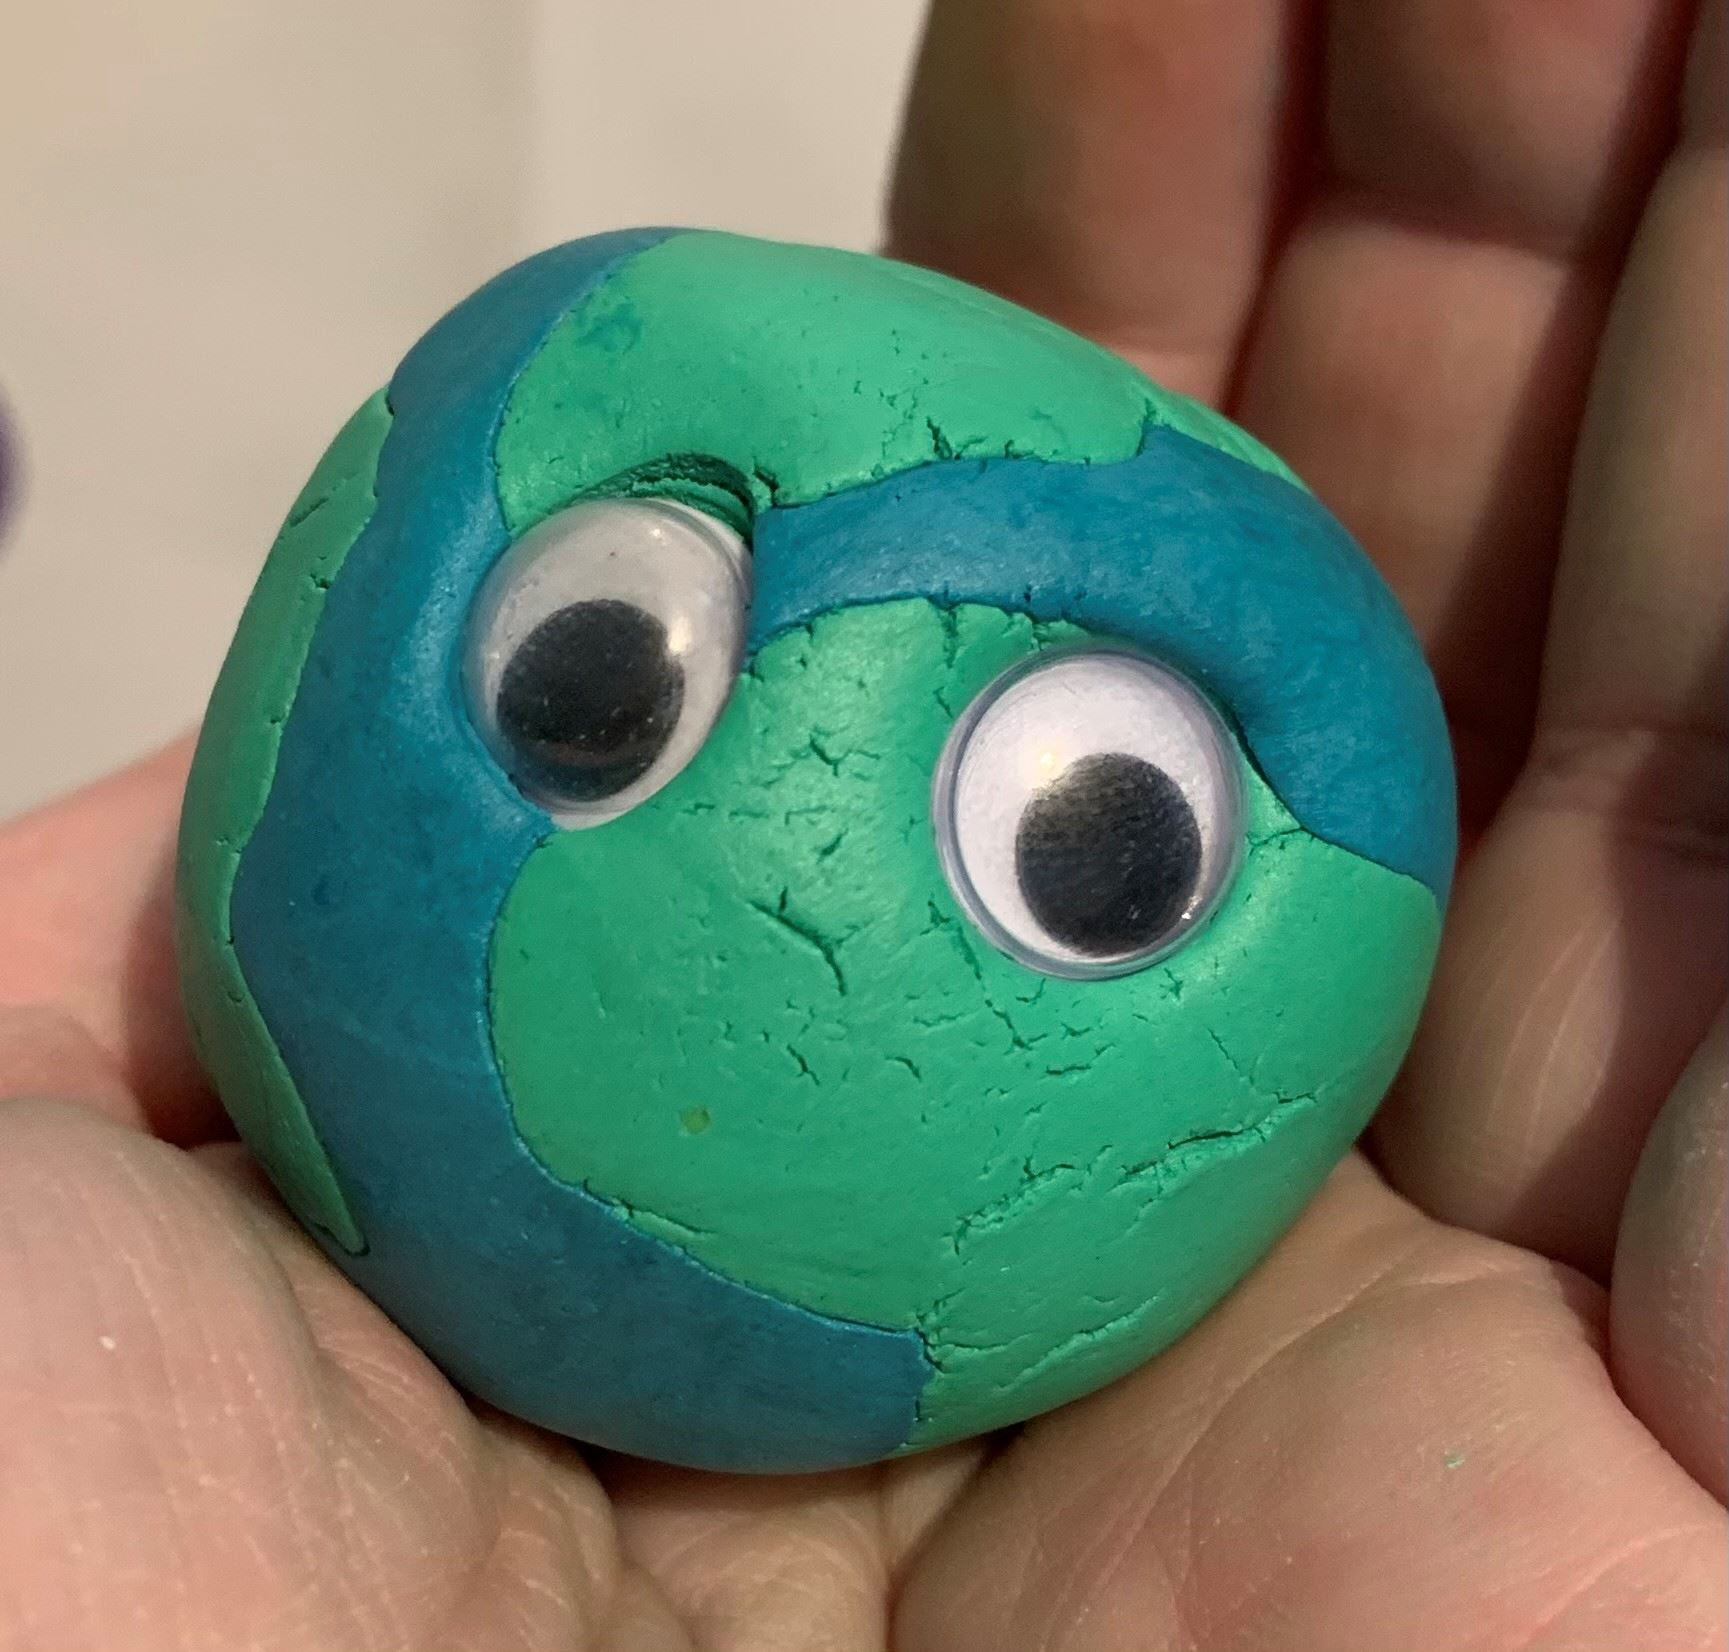 clay sculpture of the earth, golf-ball sized